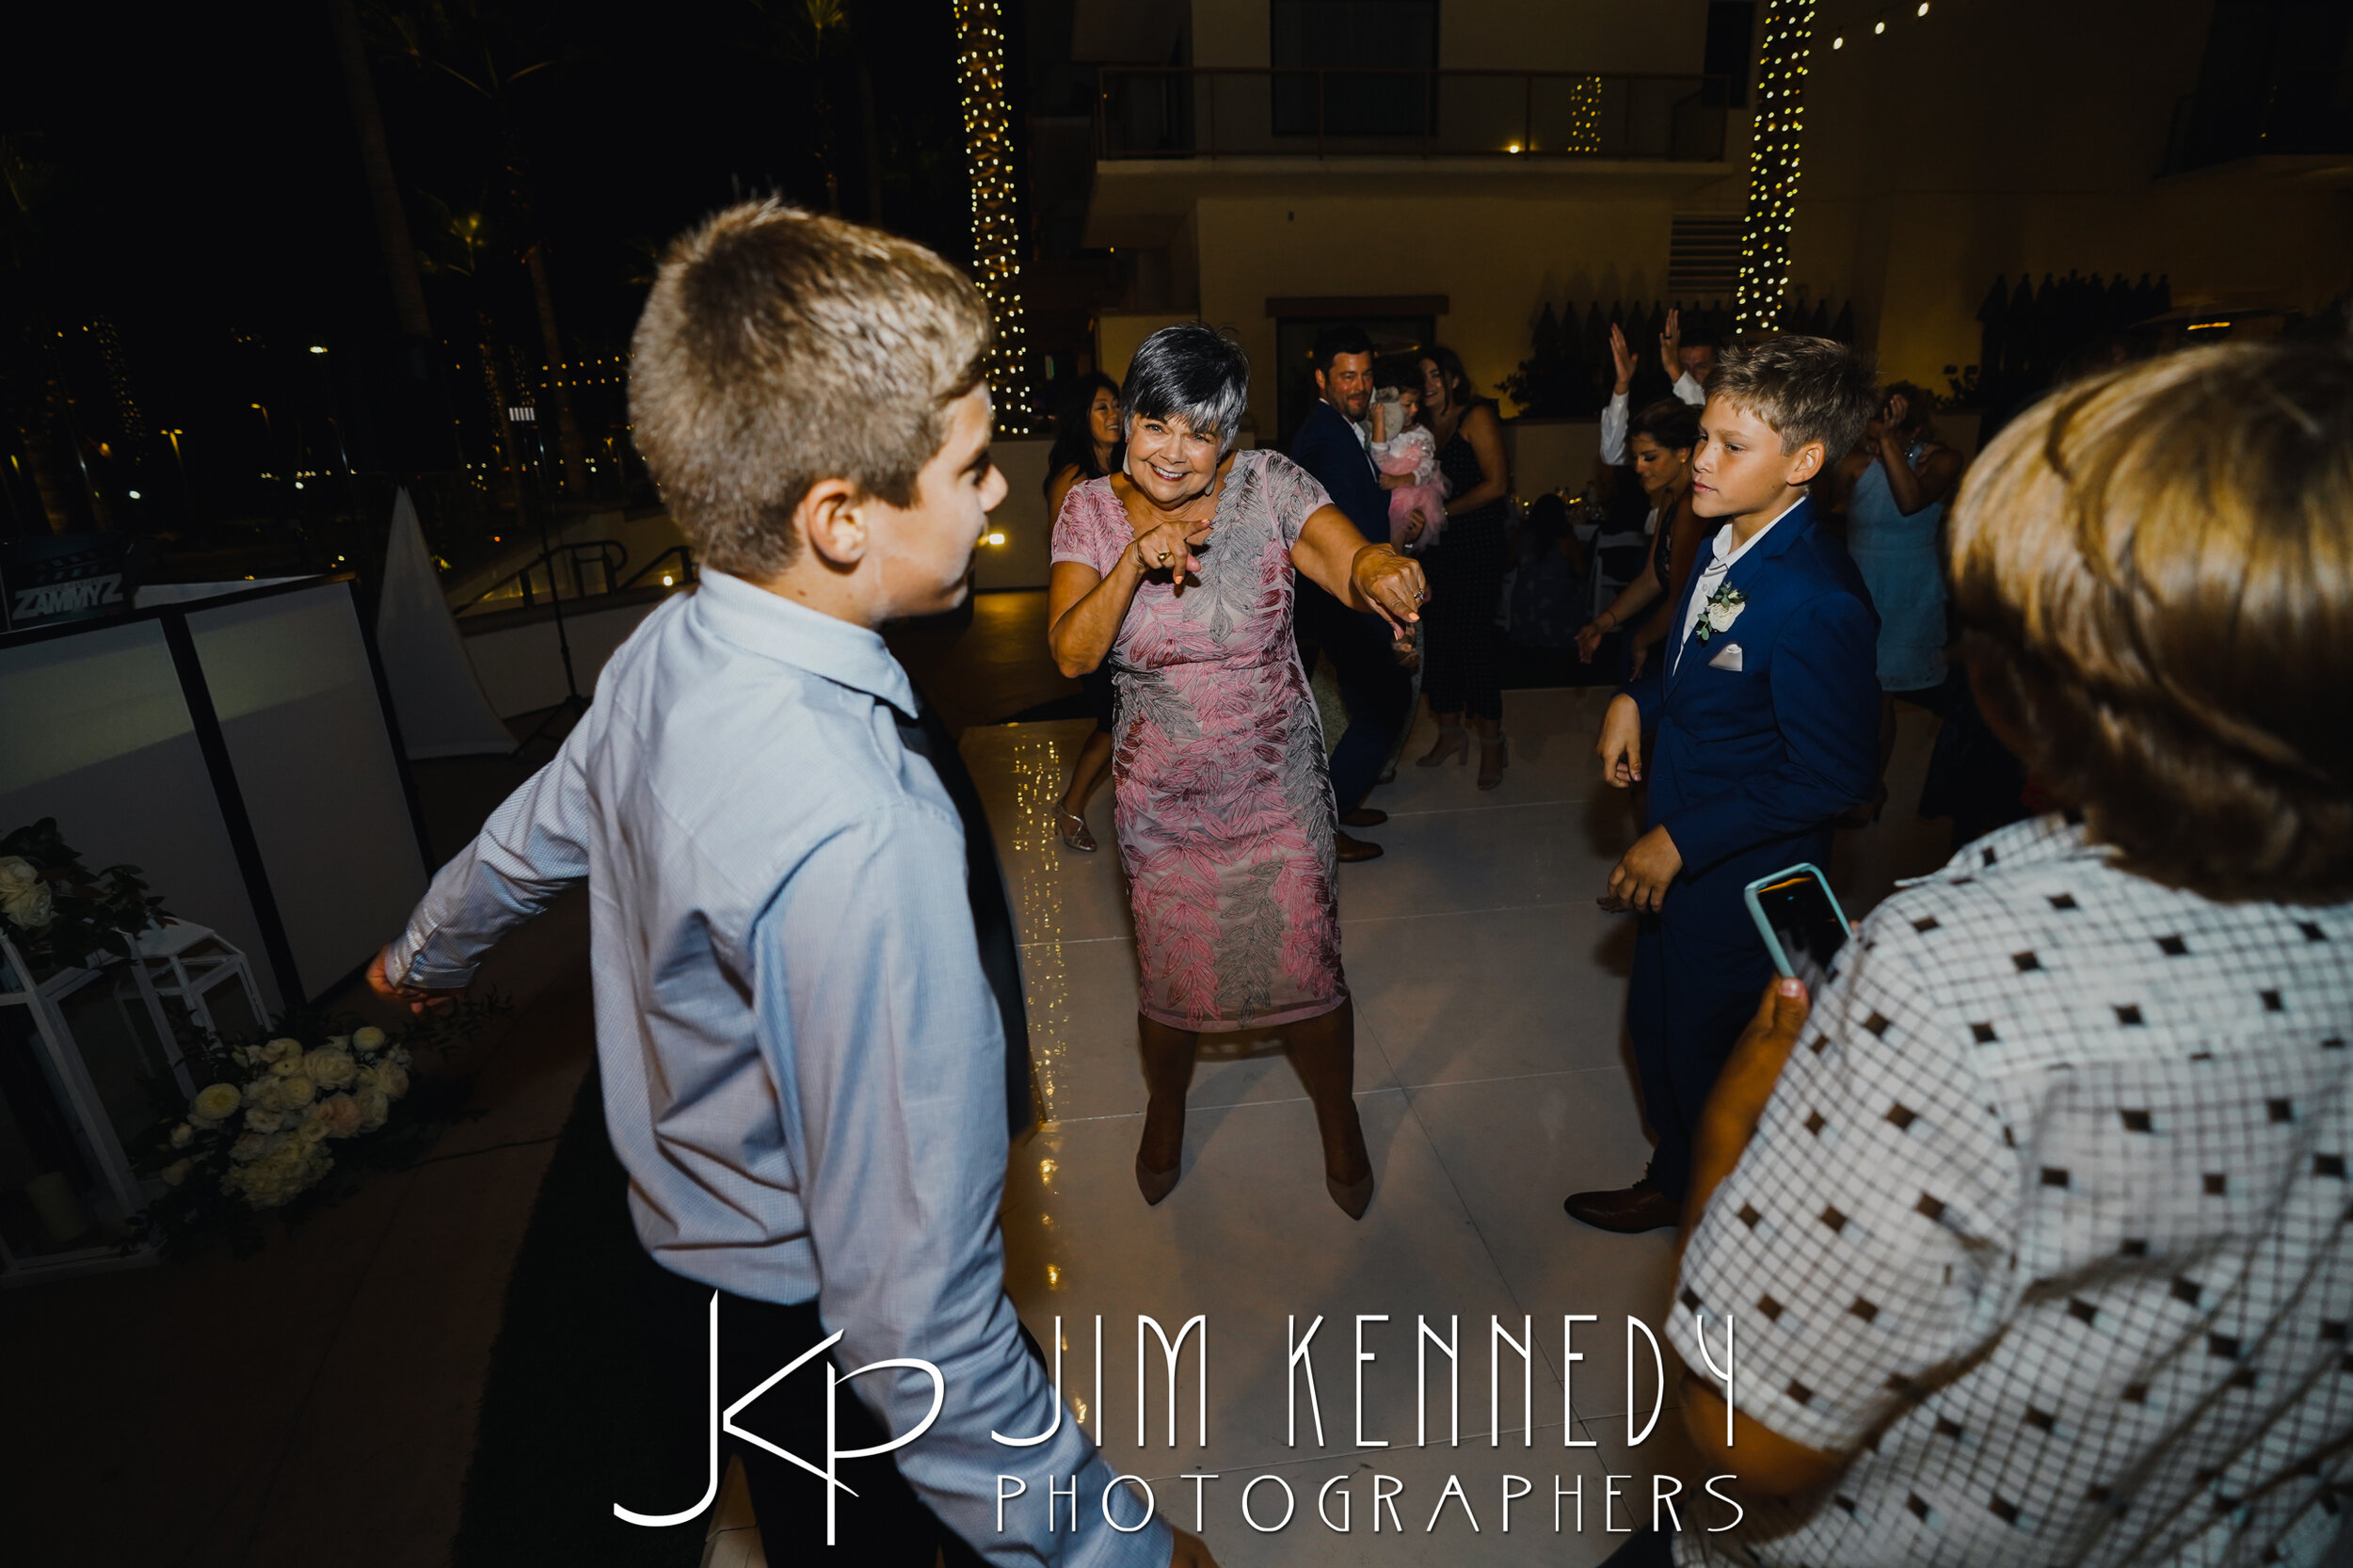 waterfront-hilton-wedding-jim-kennedy-photographers_0199.JPG